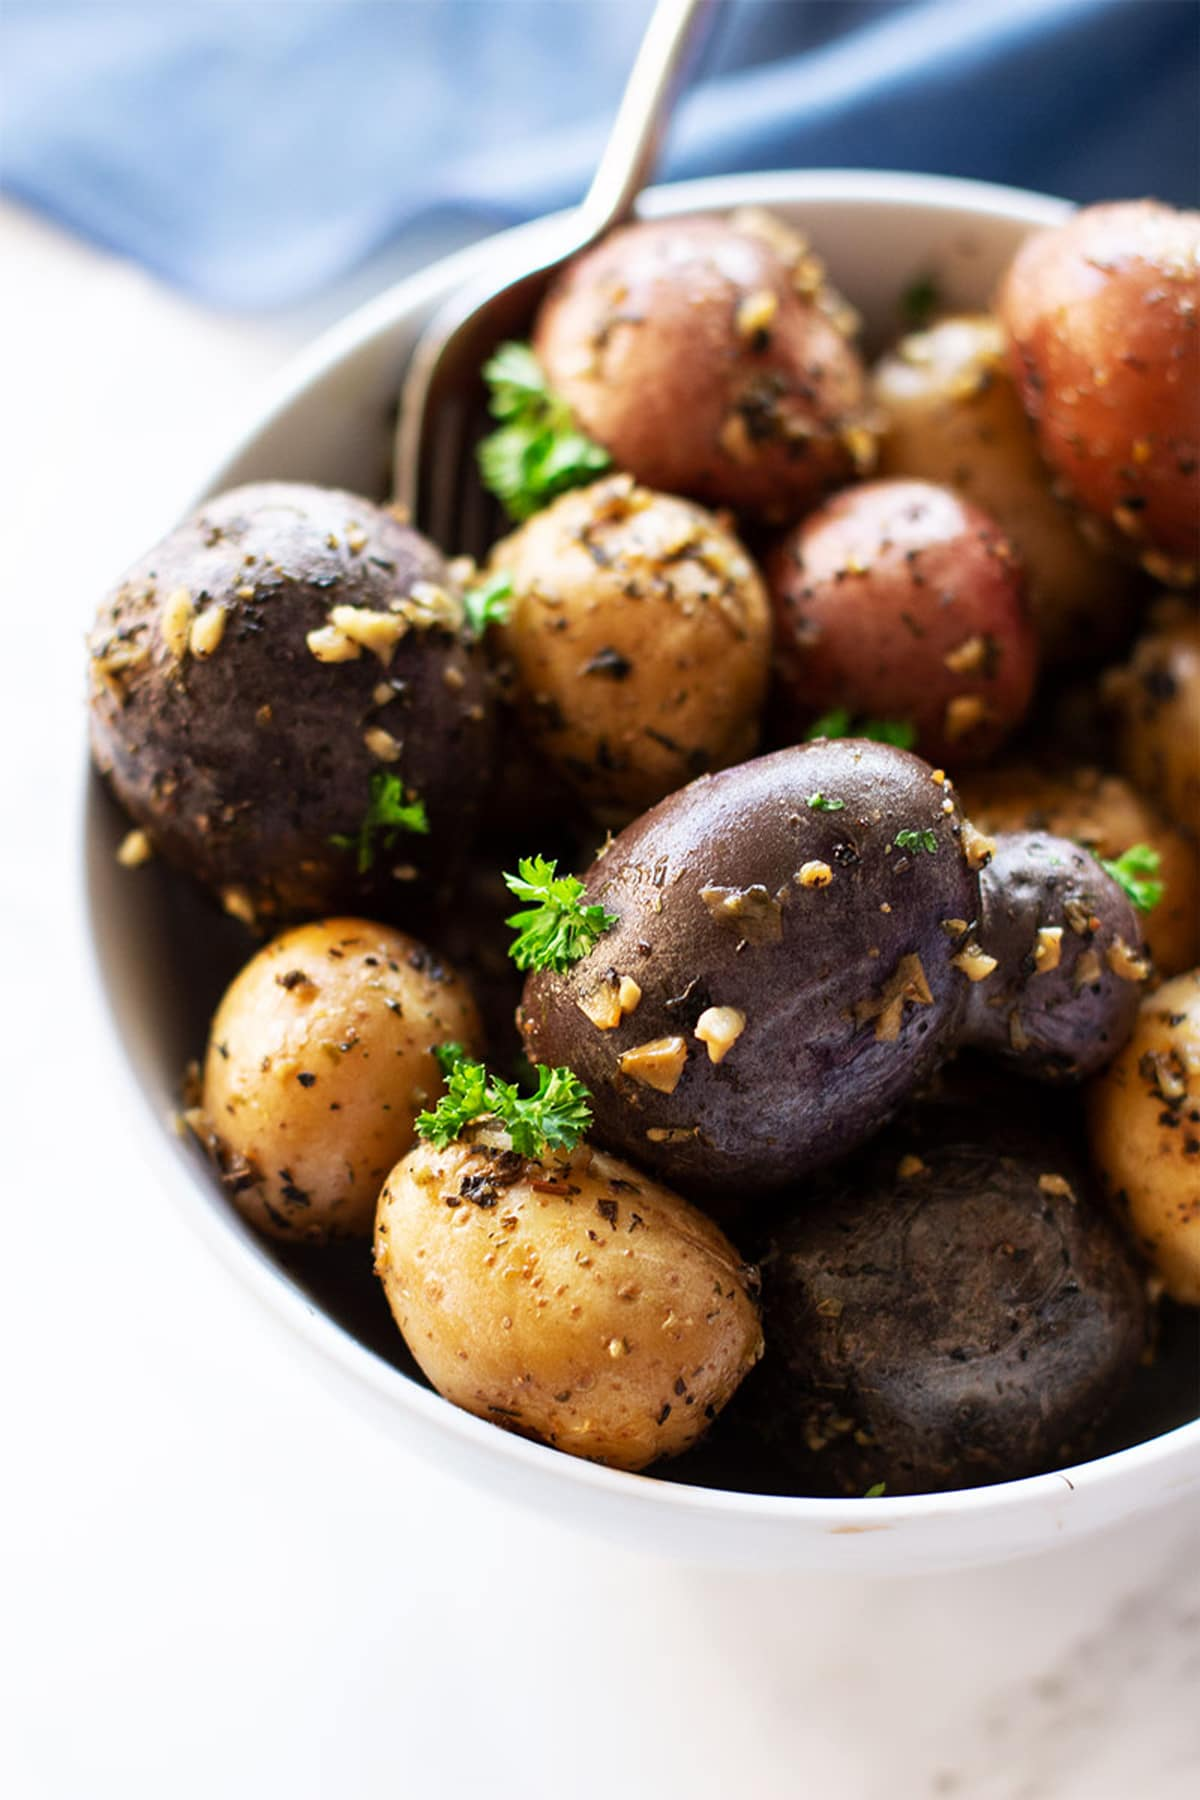 White boil of potatoes topped with parsley and garlic.